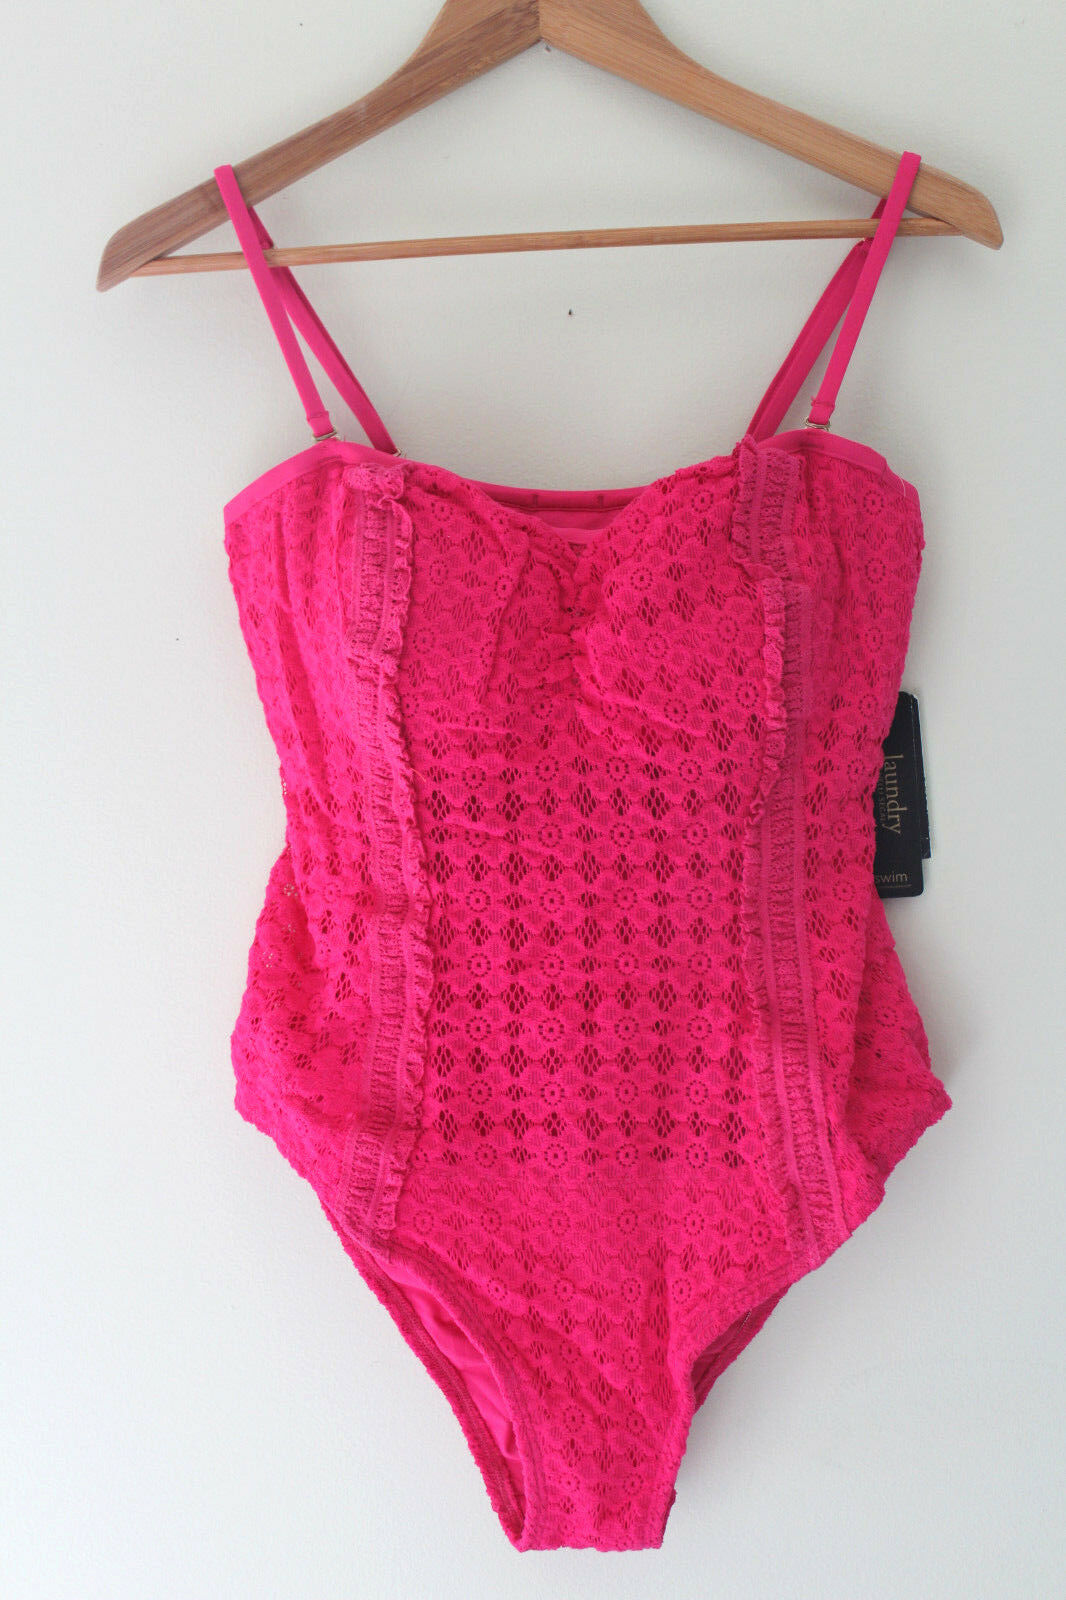 NWT Laundry by Shelli Segal Neon Pink Sexy Crochet Lace Congreenible Swim Suit L